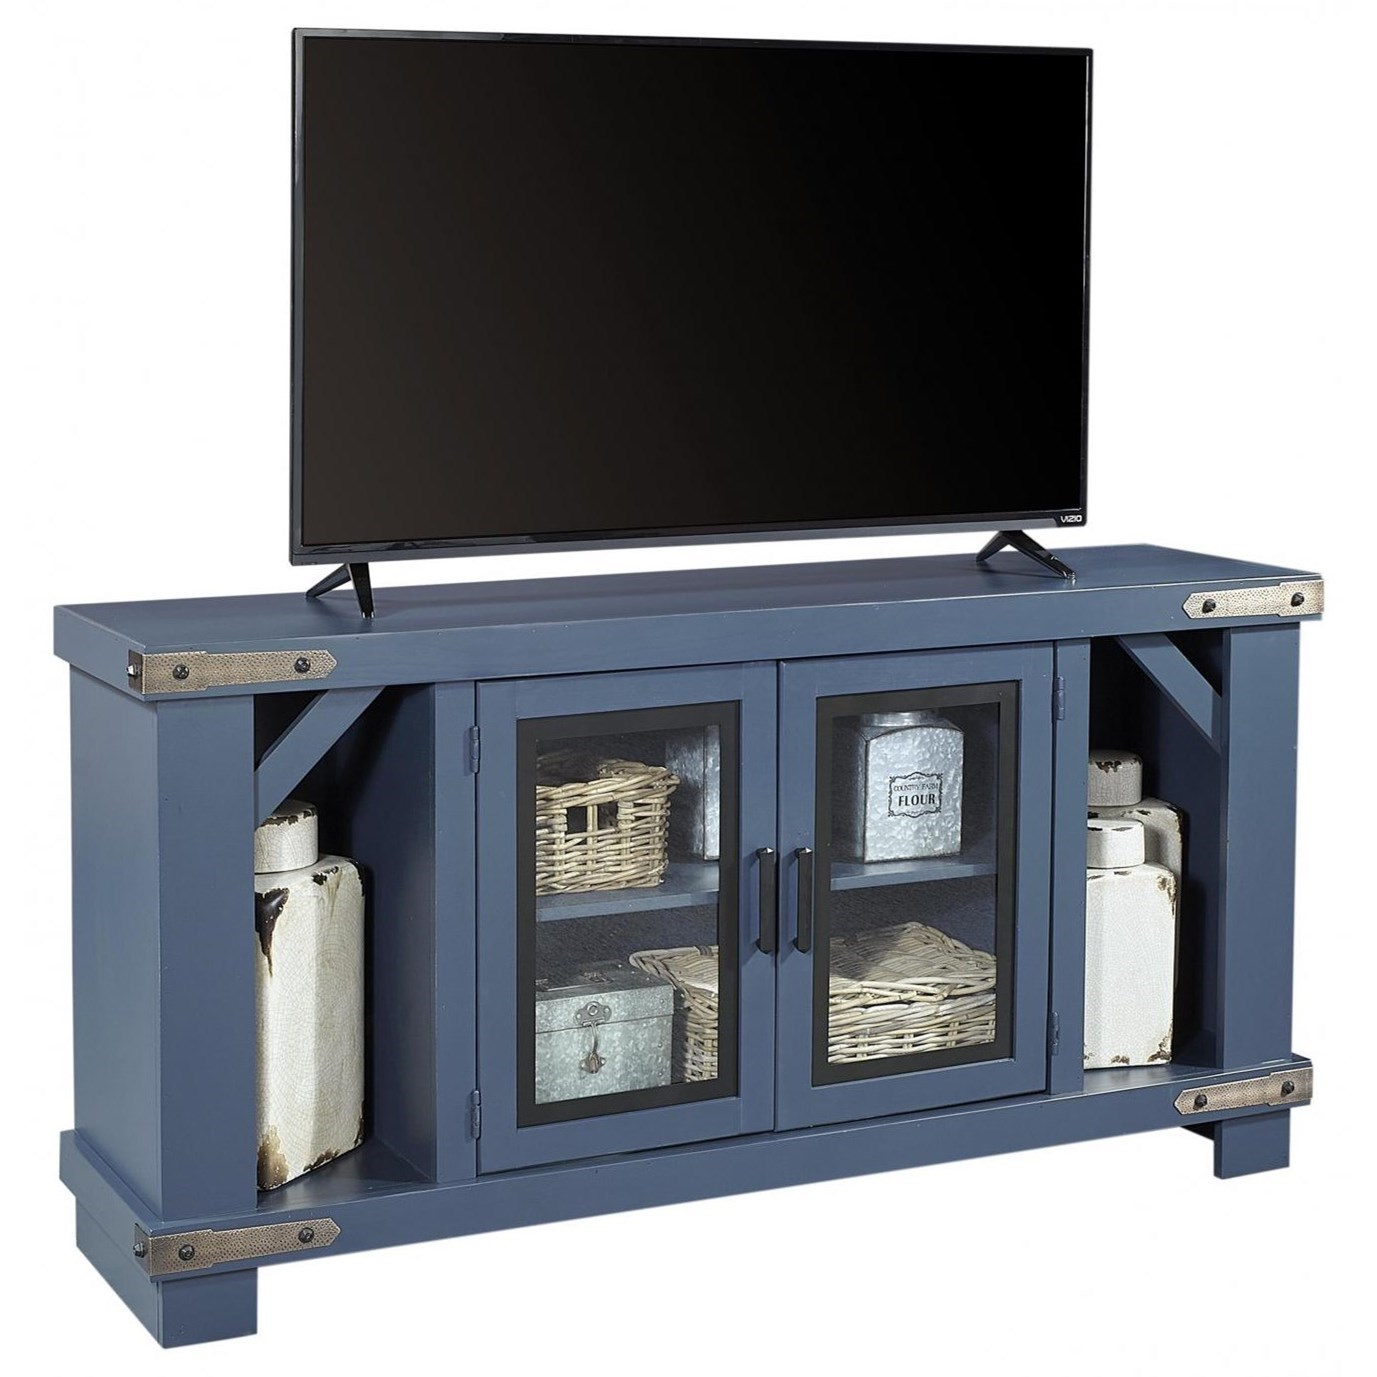 "Sawyer 64"" Console by Aspenhome at Baer's Furniture"